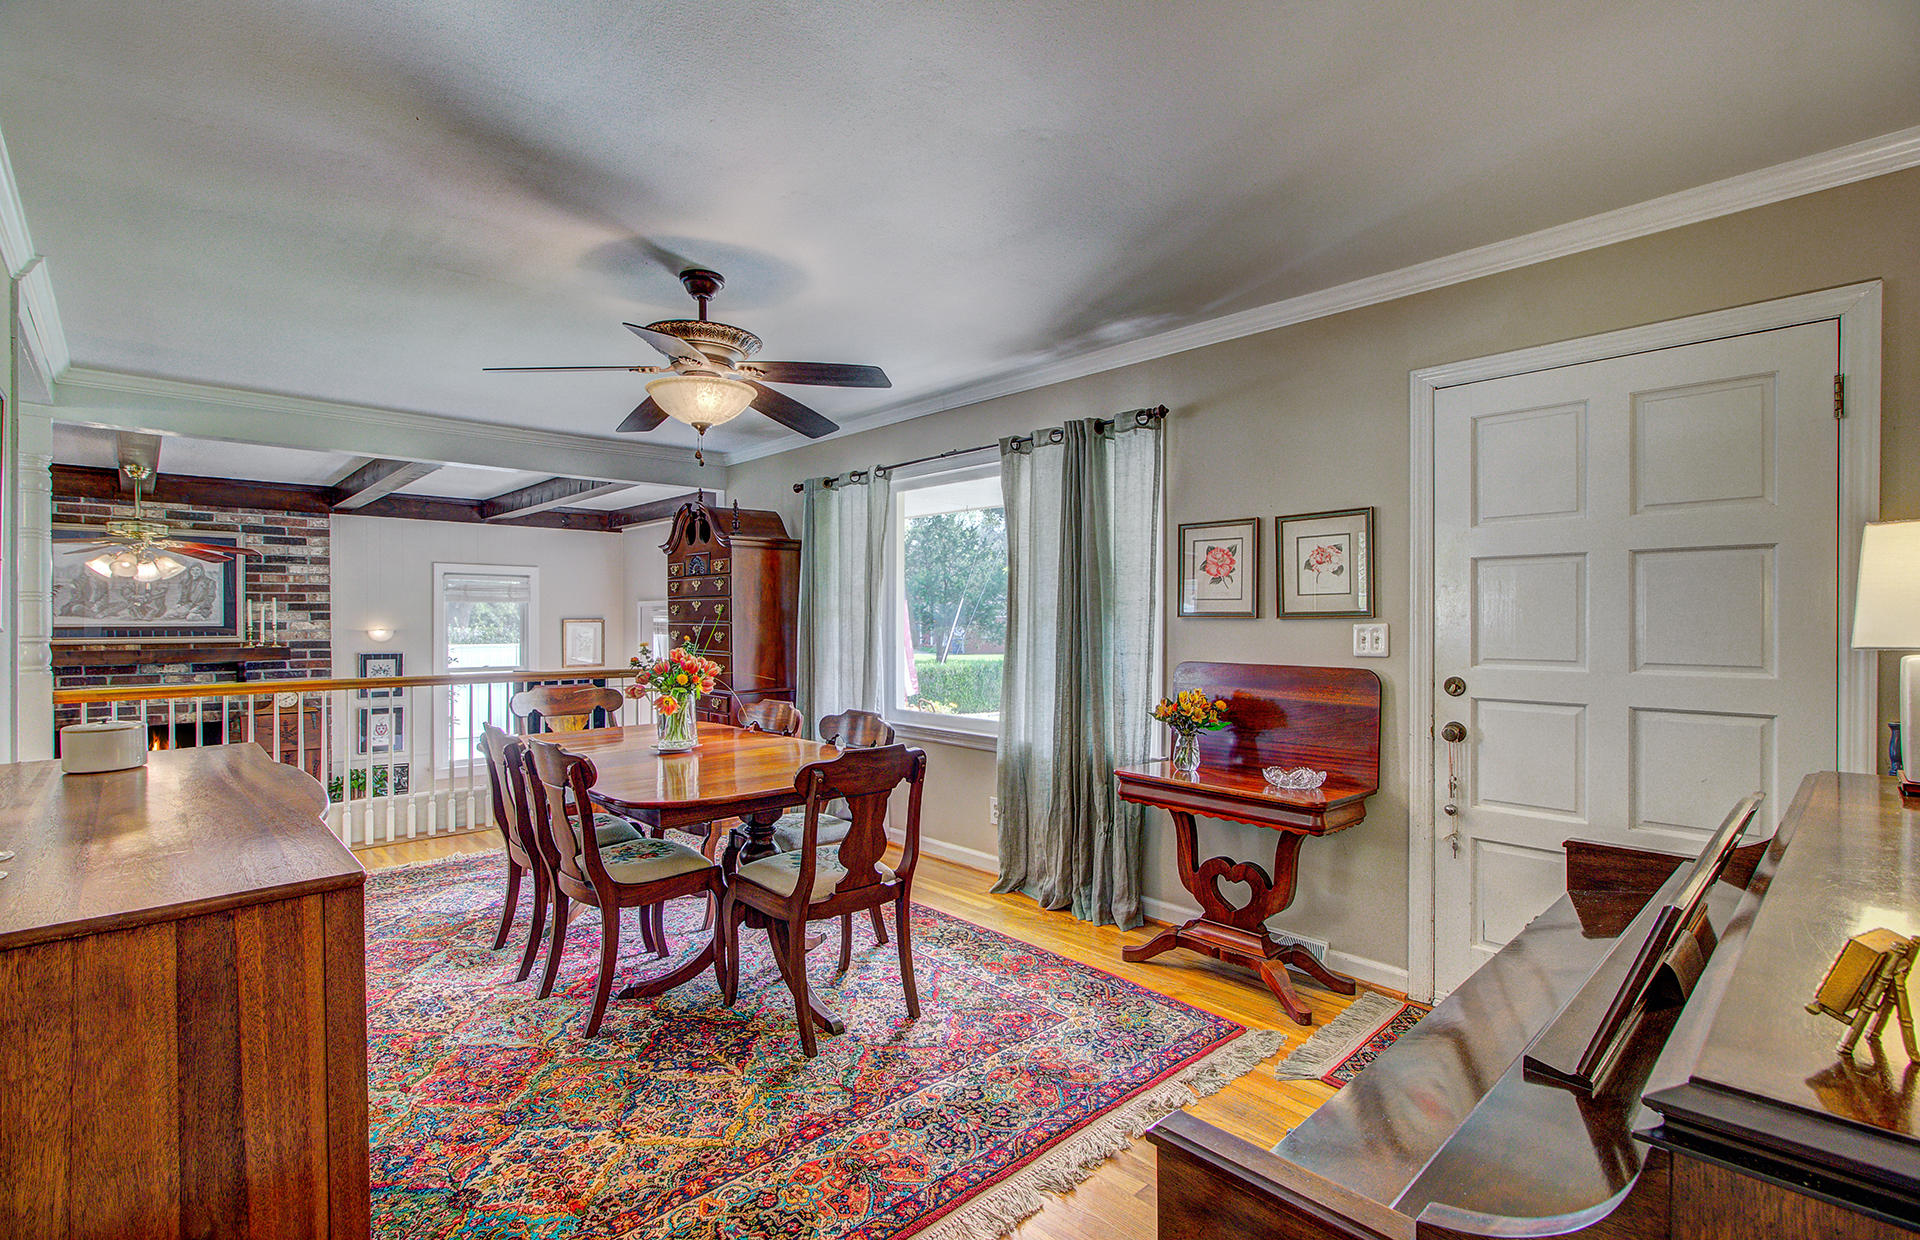 Sunset Shores Homes For Sale - 3646 Moonglow, Johns Island, SC - 0